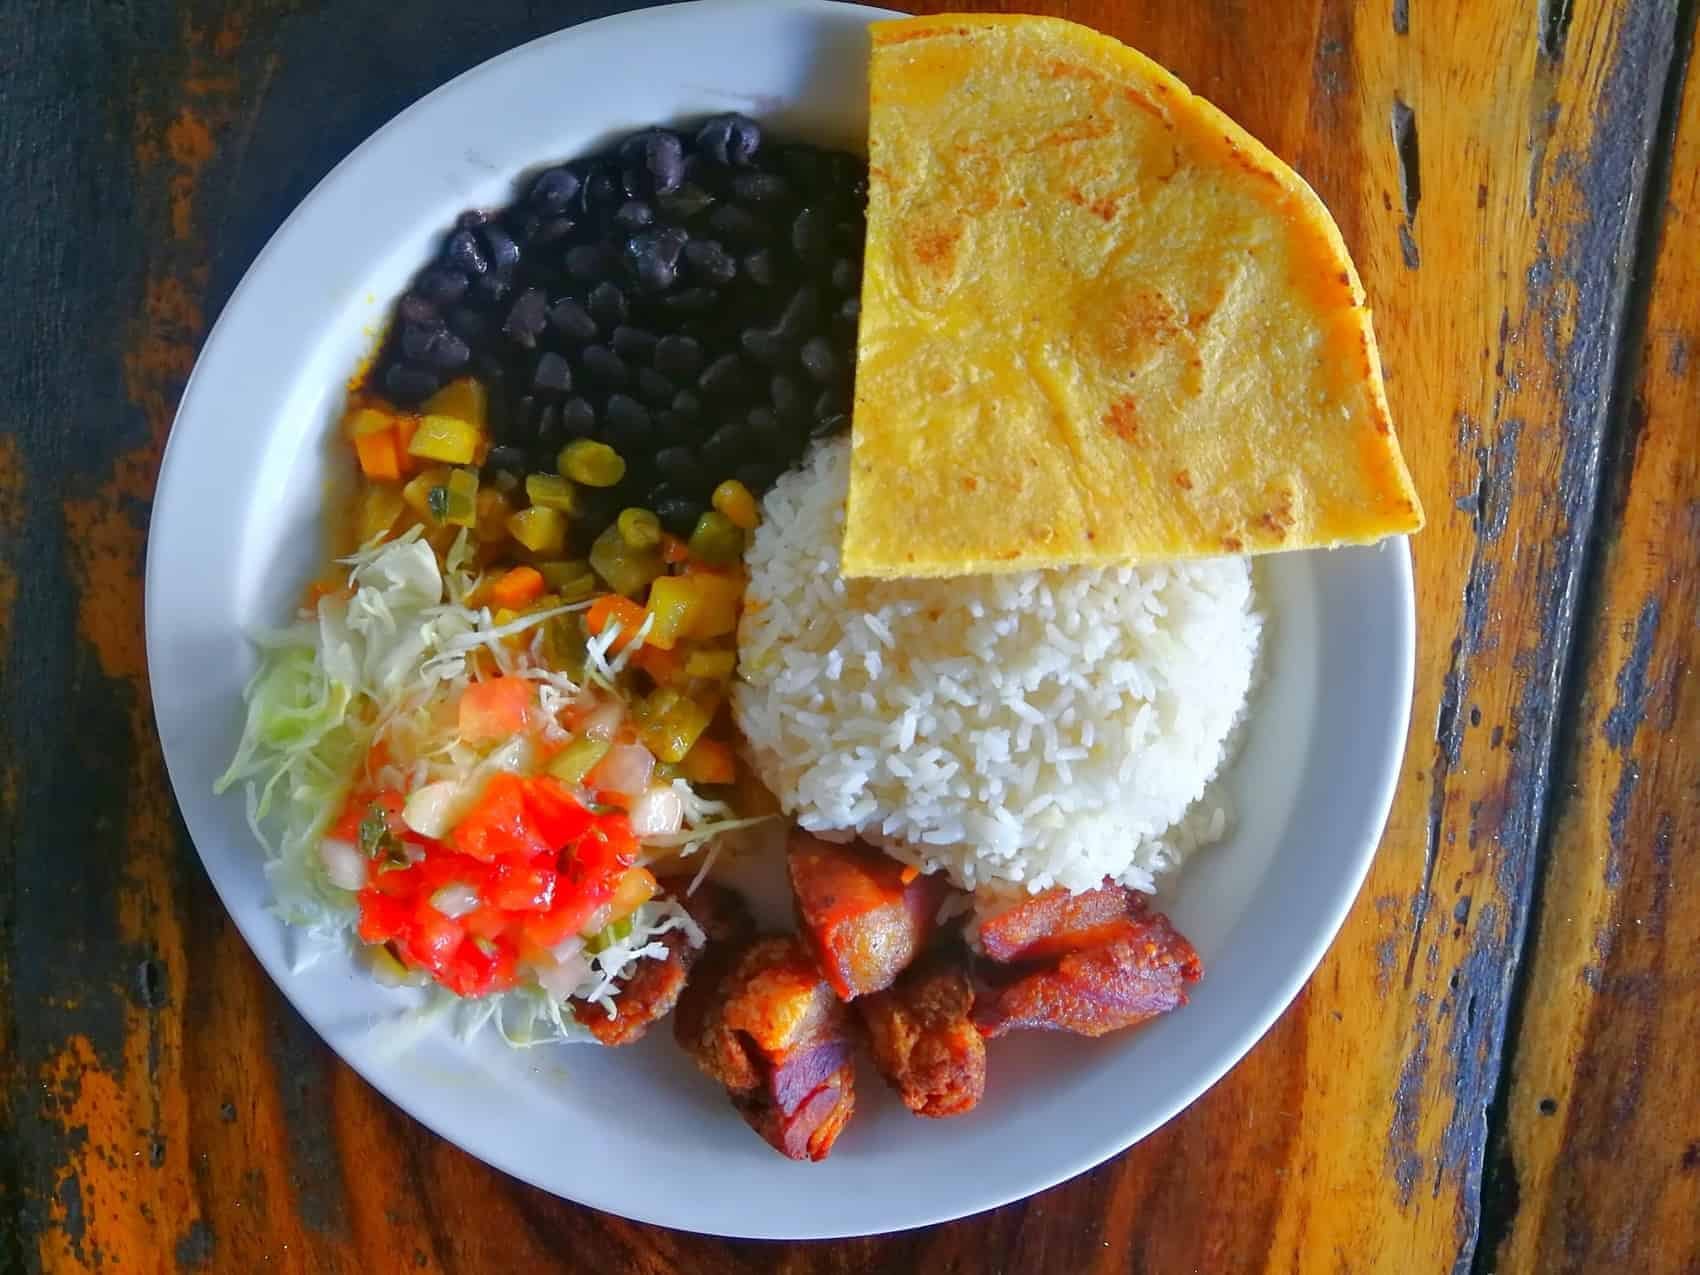 Traditional food in Costa Rica. Rice, beans, salad, tortillas, pork beaf chicken or fish.